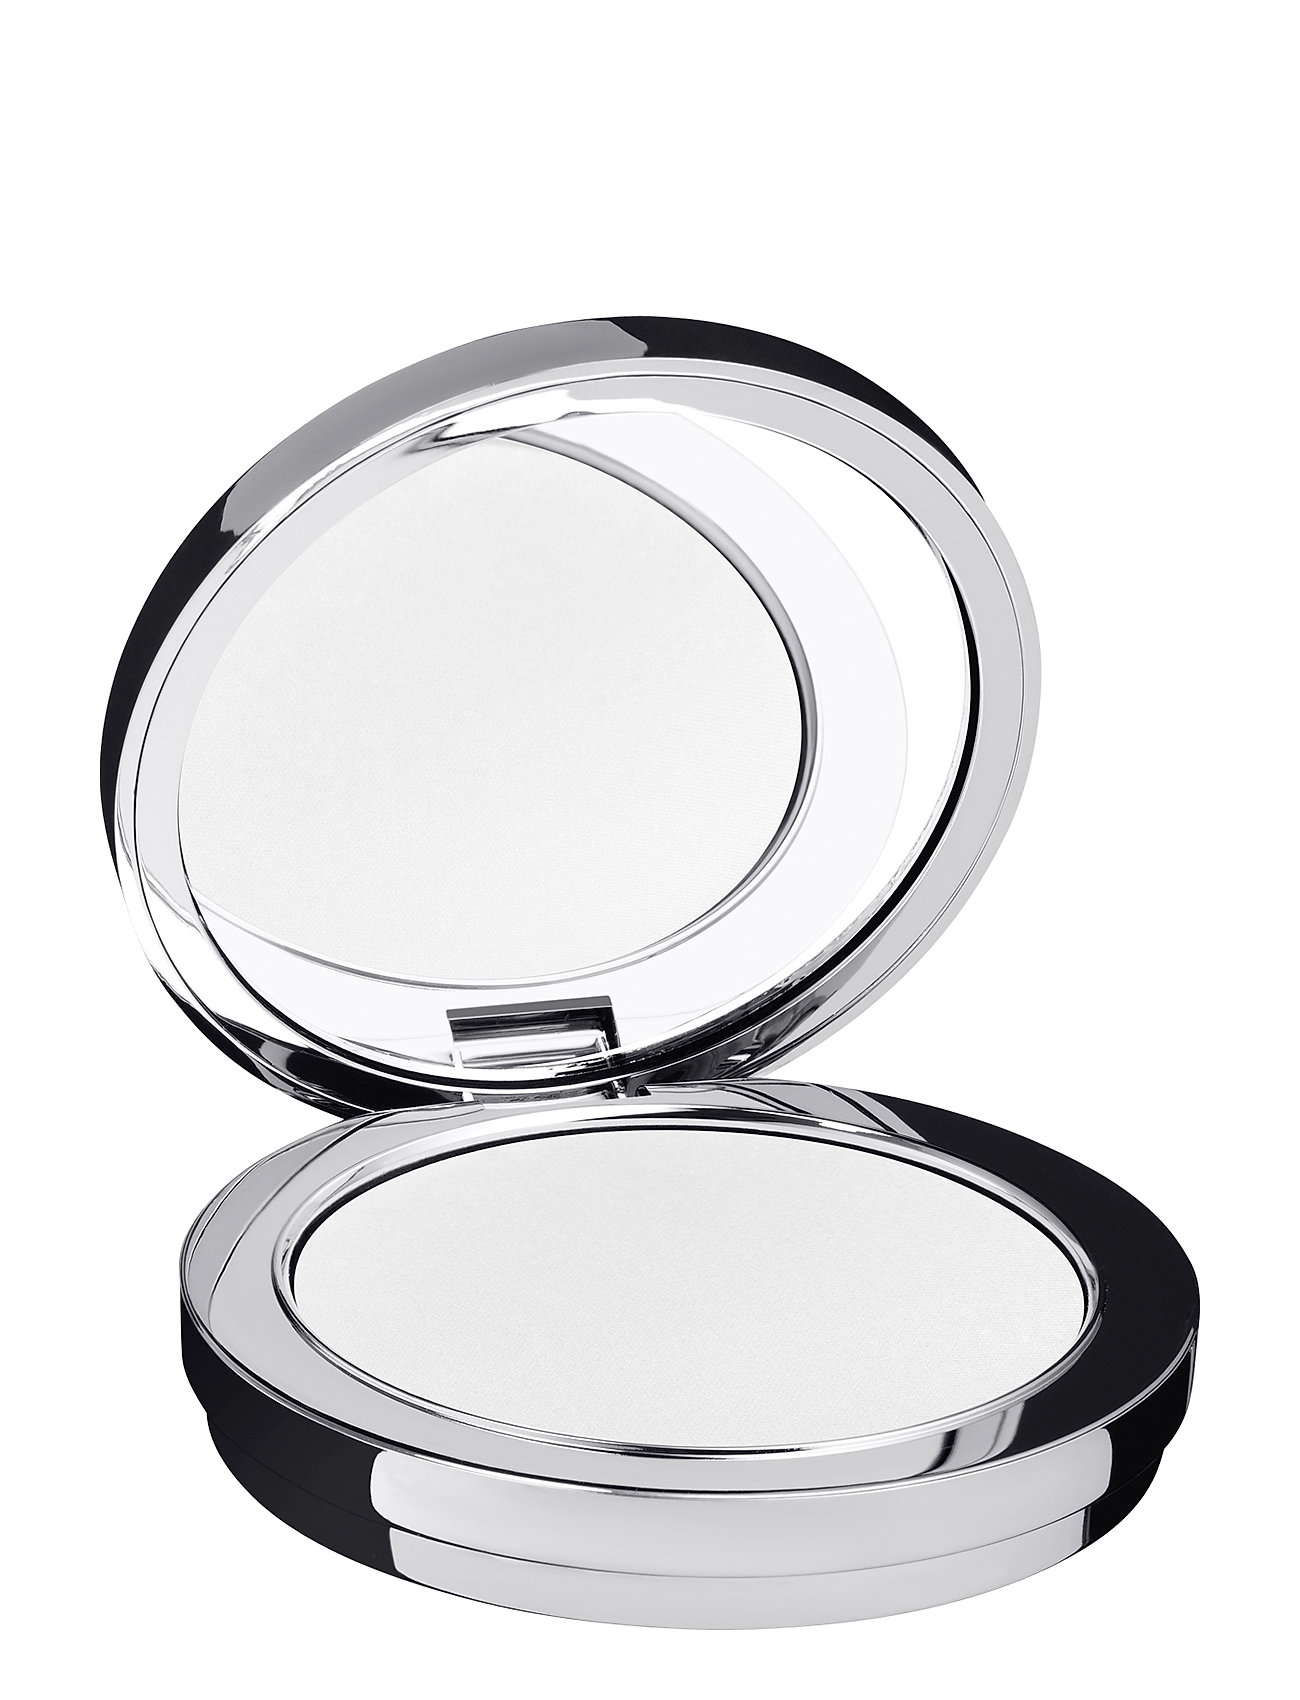 Rodial Instaglam Compact Deluxe Translucent HD Powder - TRANSLUCENT